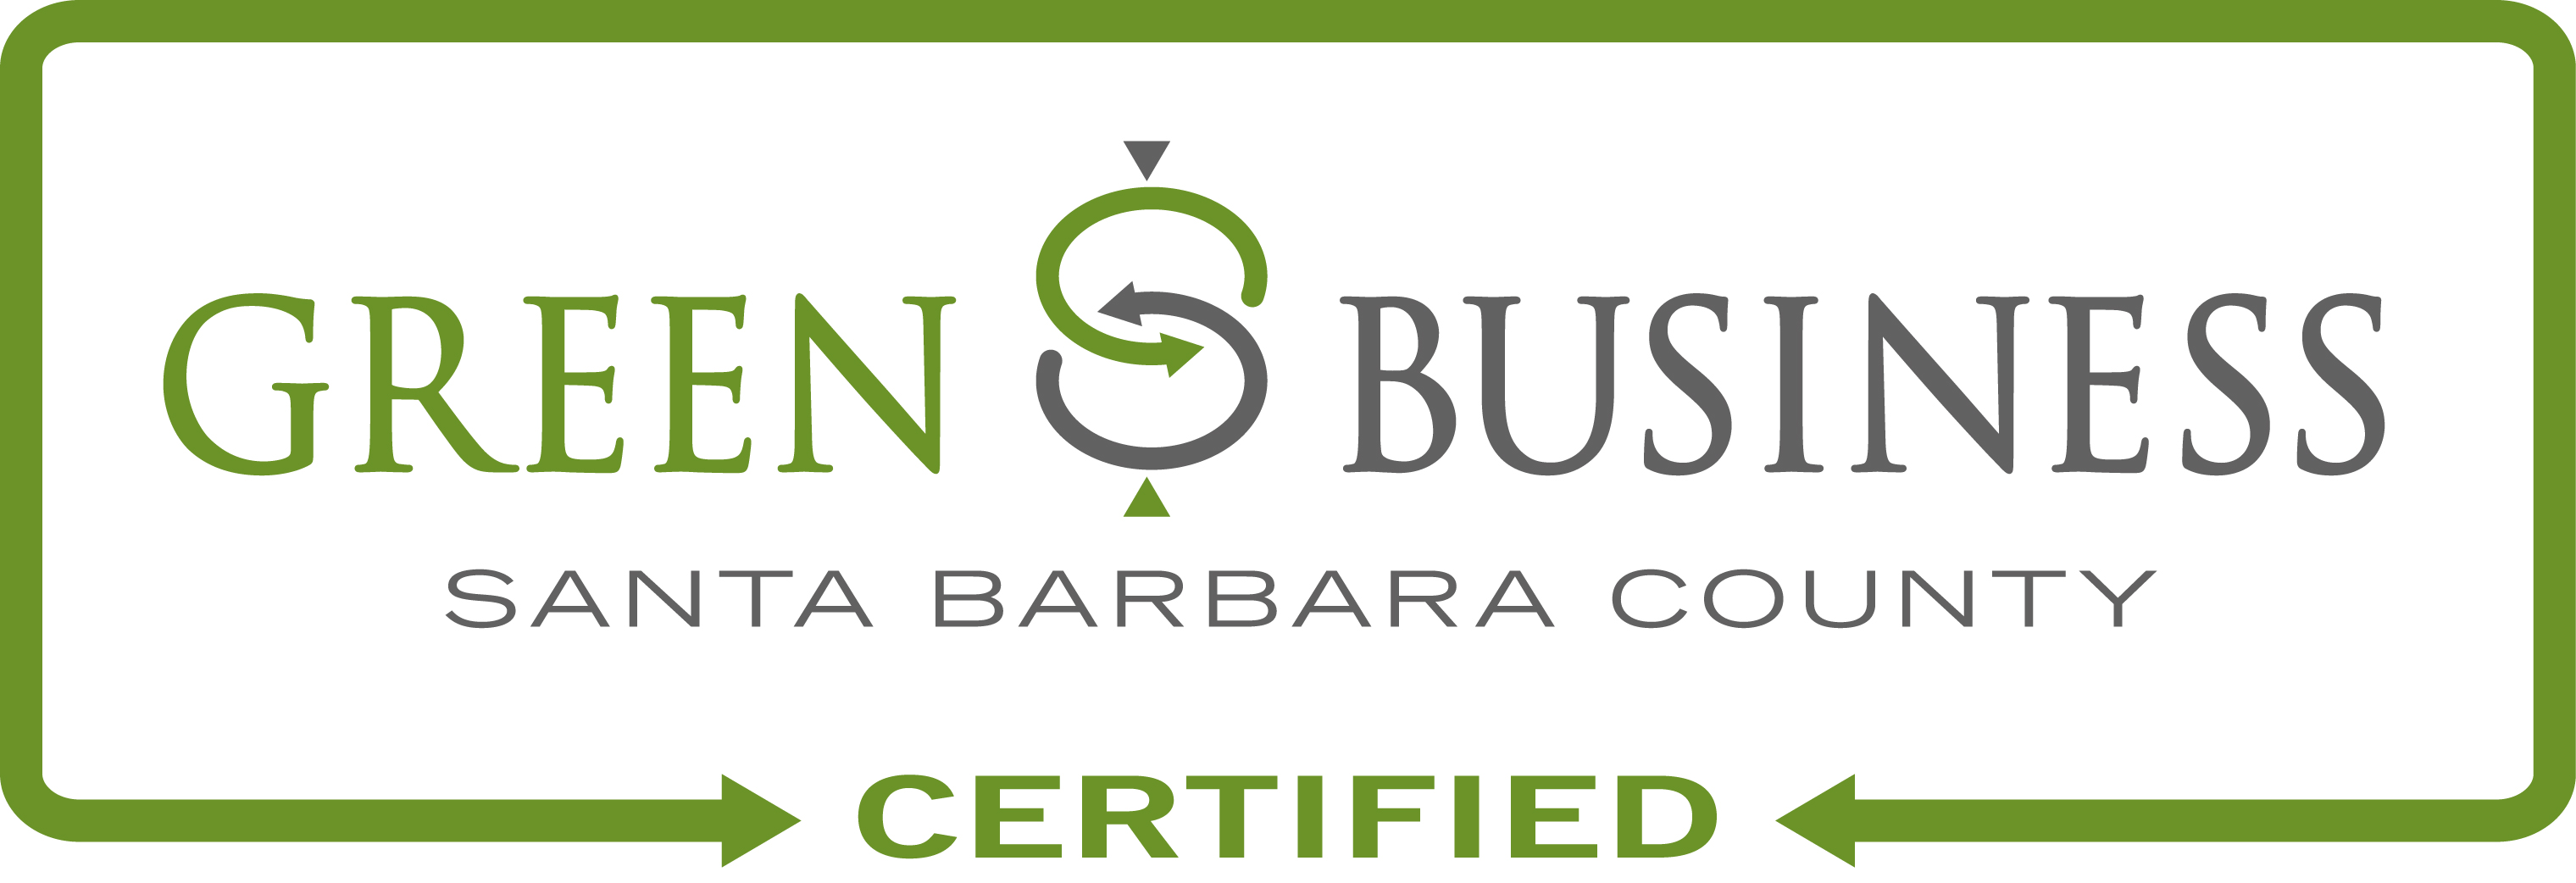 Santa Barbara County Green Business Certified Logo